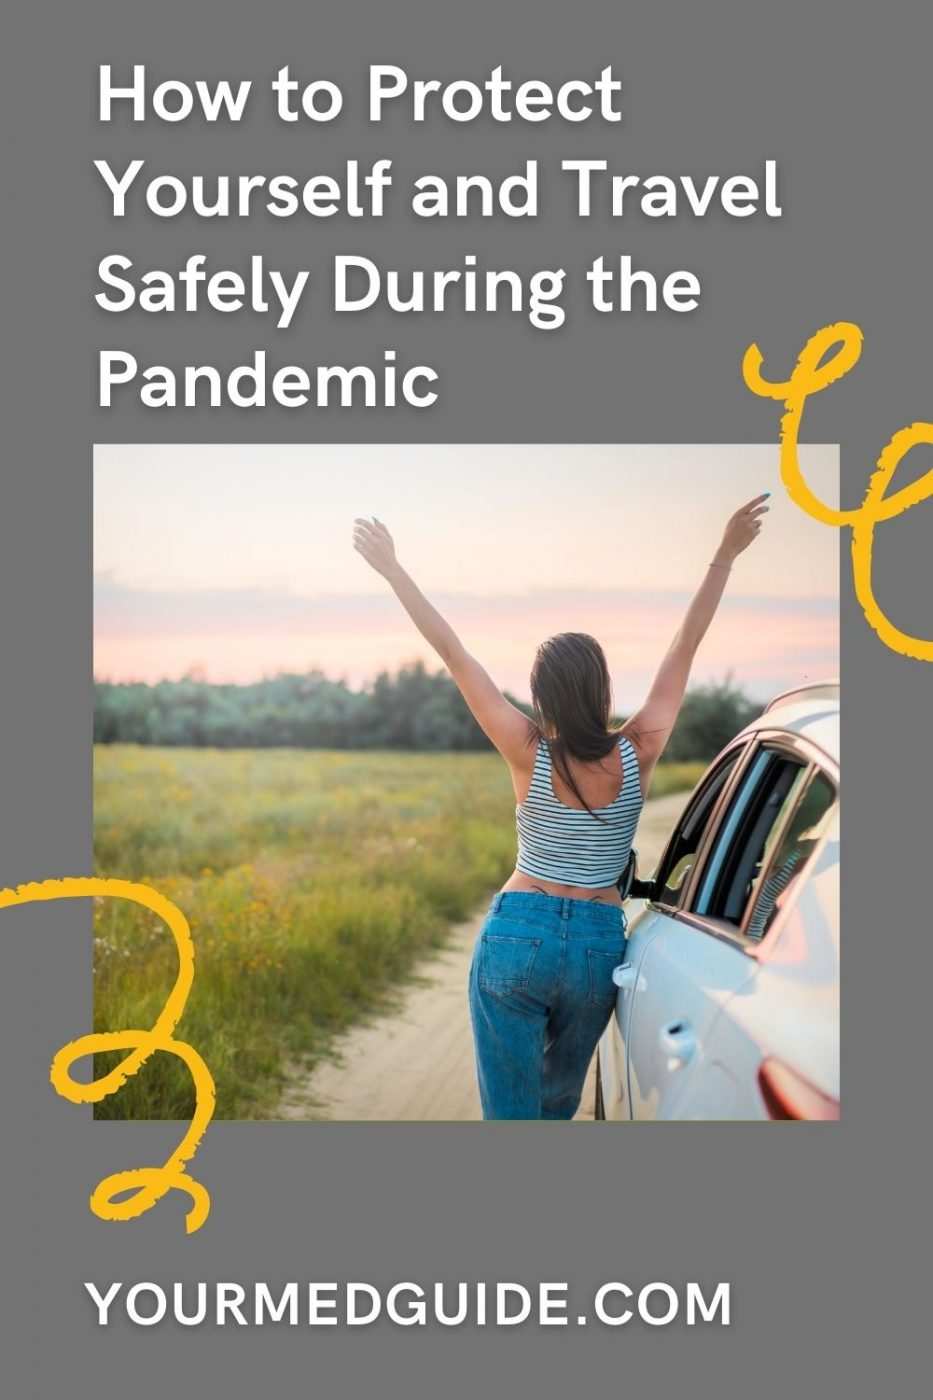 How to Protect Yourself and travel safely during the pandemic